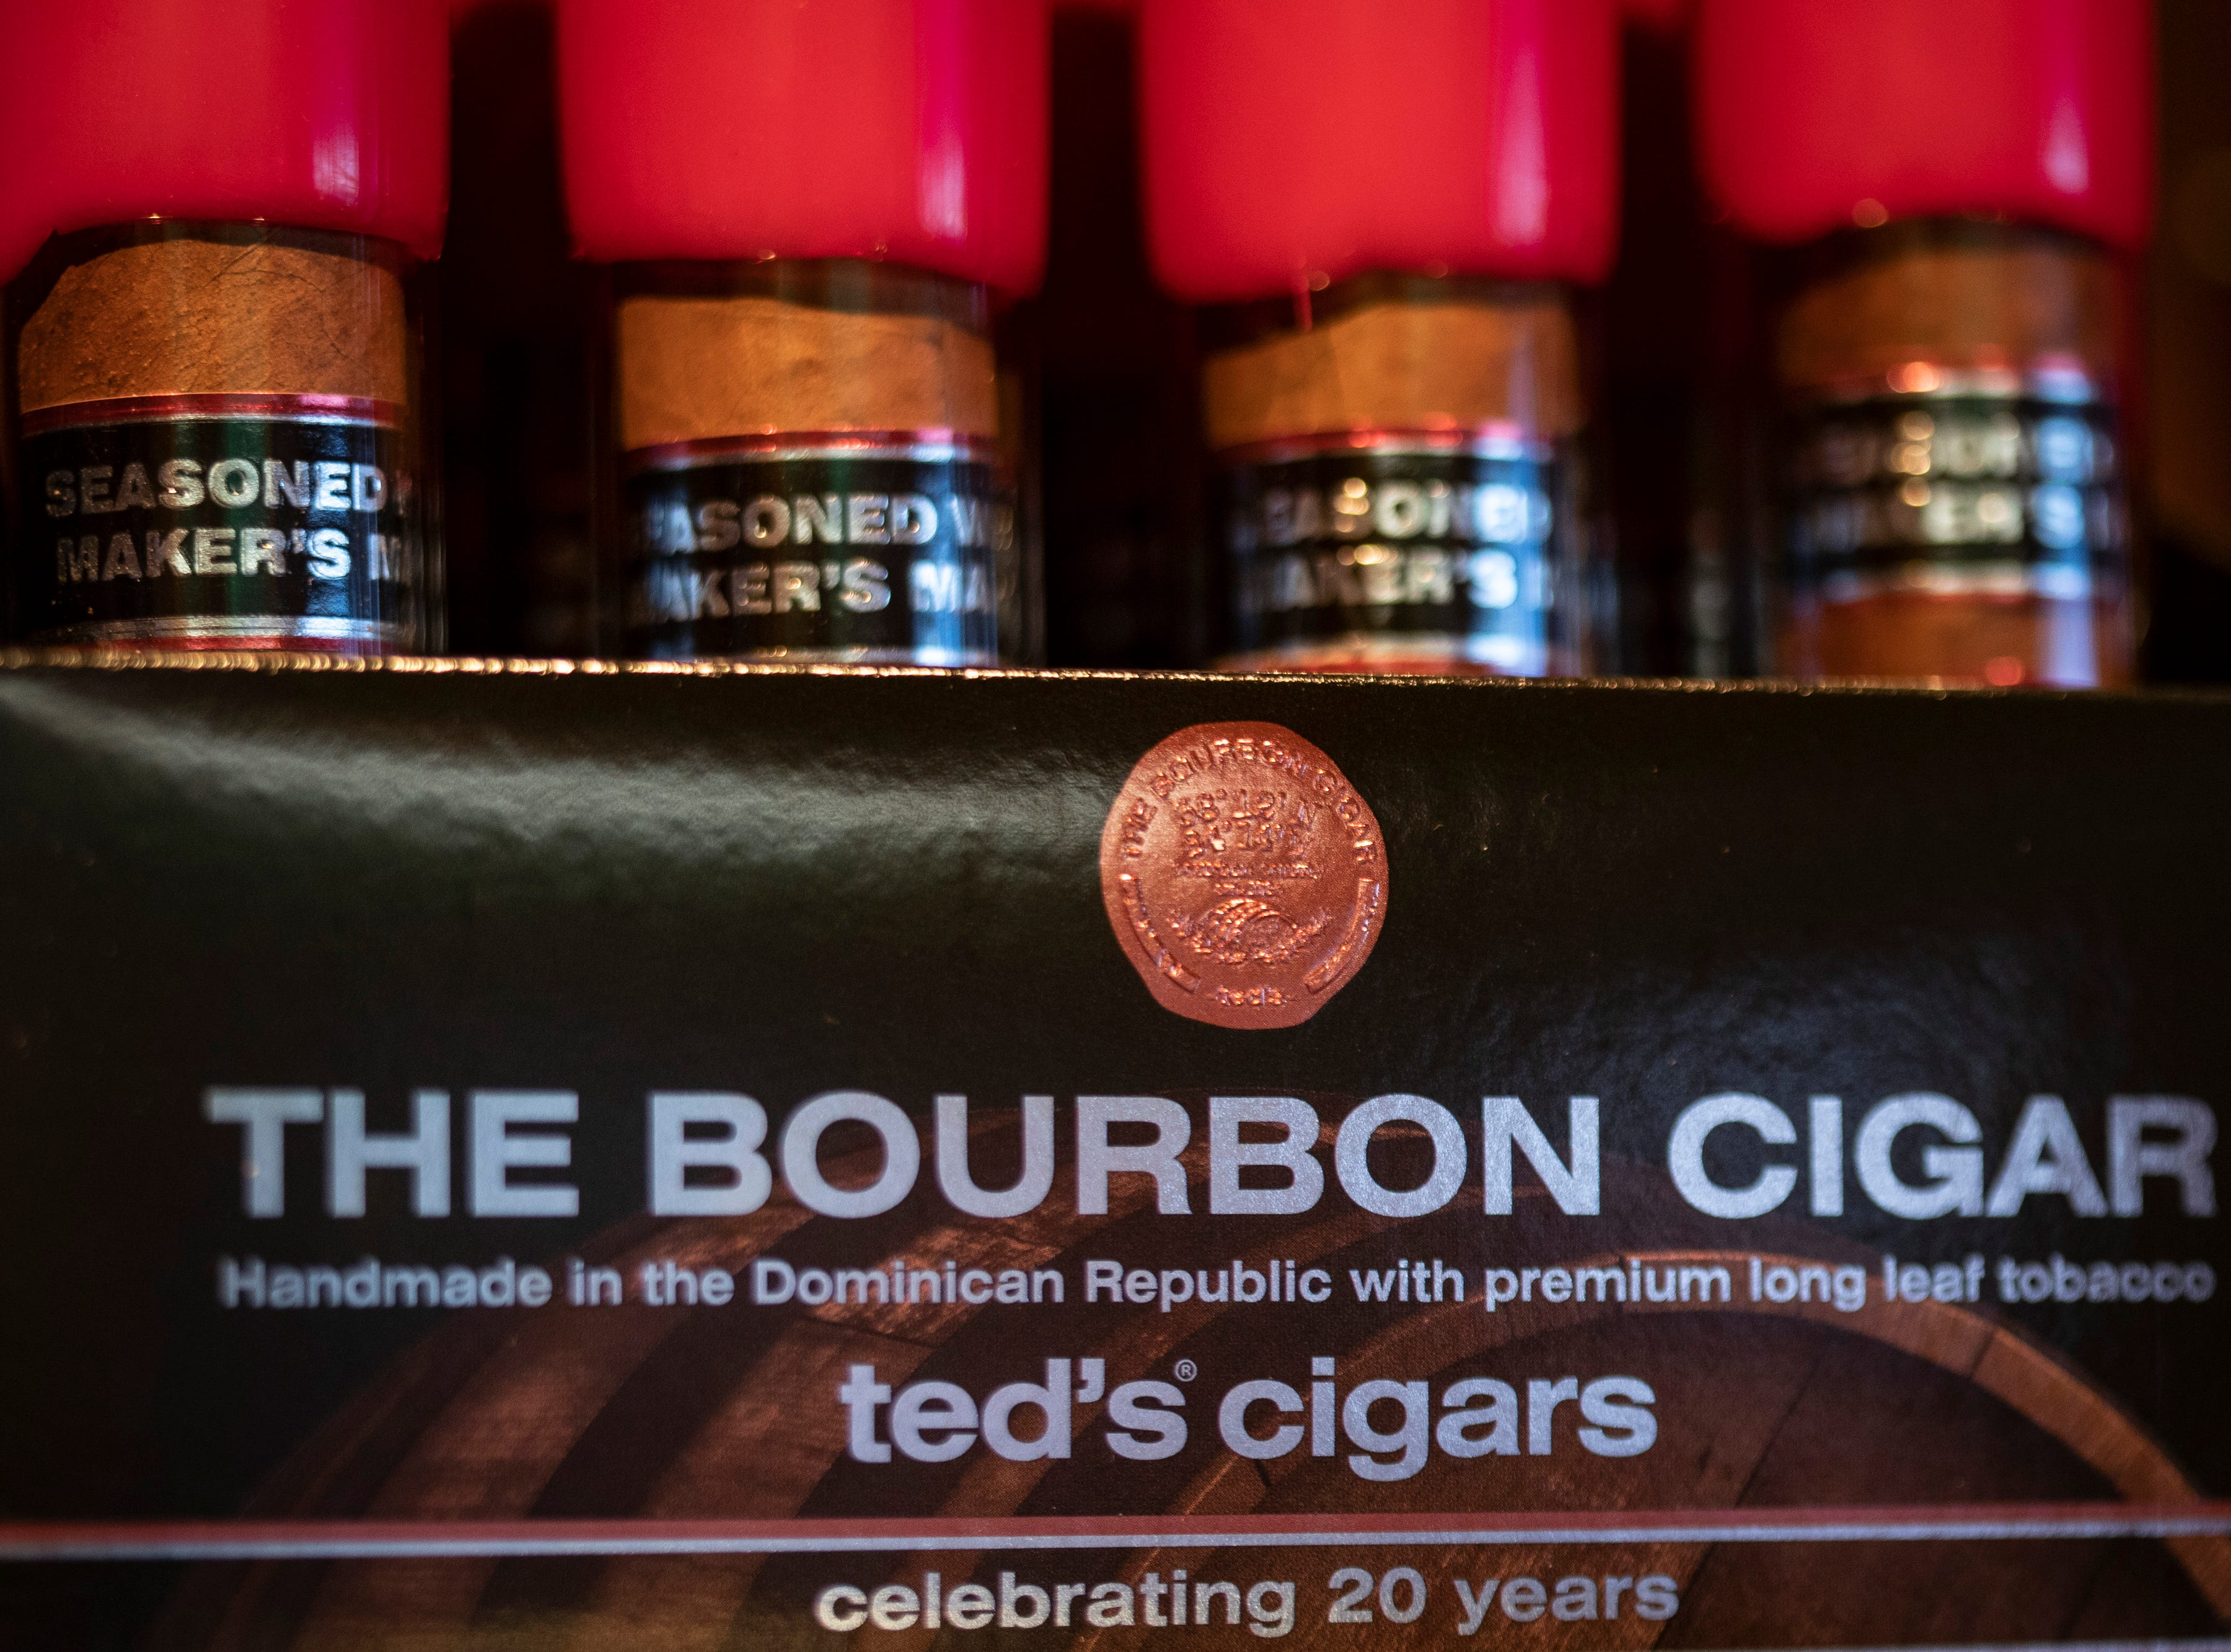 """Ted Jackson owns Ted's Cigars, a small Louisville company that specializes in cigar sales and has had a working relationship with Maker's Mark for over 20 years. """"It started at a Derby party at Bill Samuels' house,"""" Jackson said of a past president of the company. Jackson states that Samuels wanted a Maker's Mark cigar made and soon Jackson and his team created a proprietary flavoring method using the bourbon. The relationship has included chocolates and even Jackson running a Maker's Mark store in Oxmoor Mall. Jan. 10, 2019"""